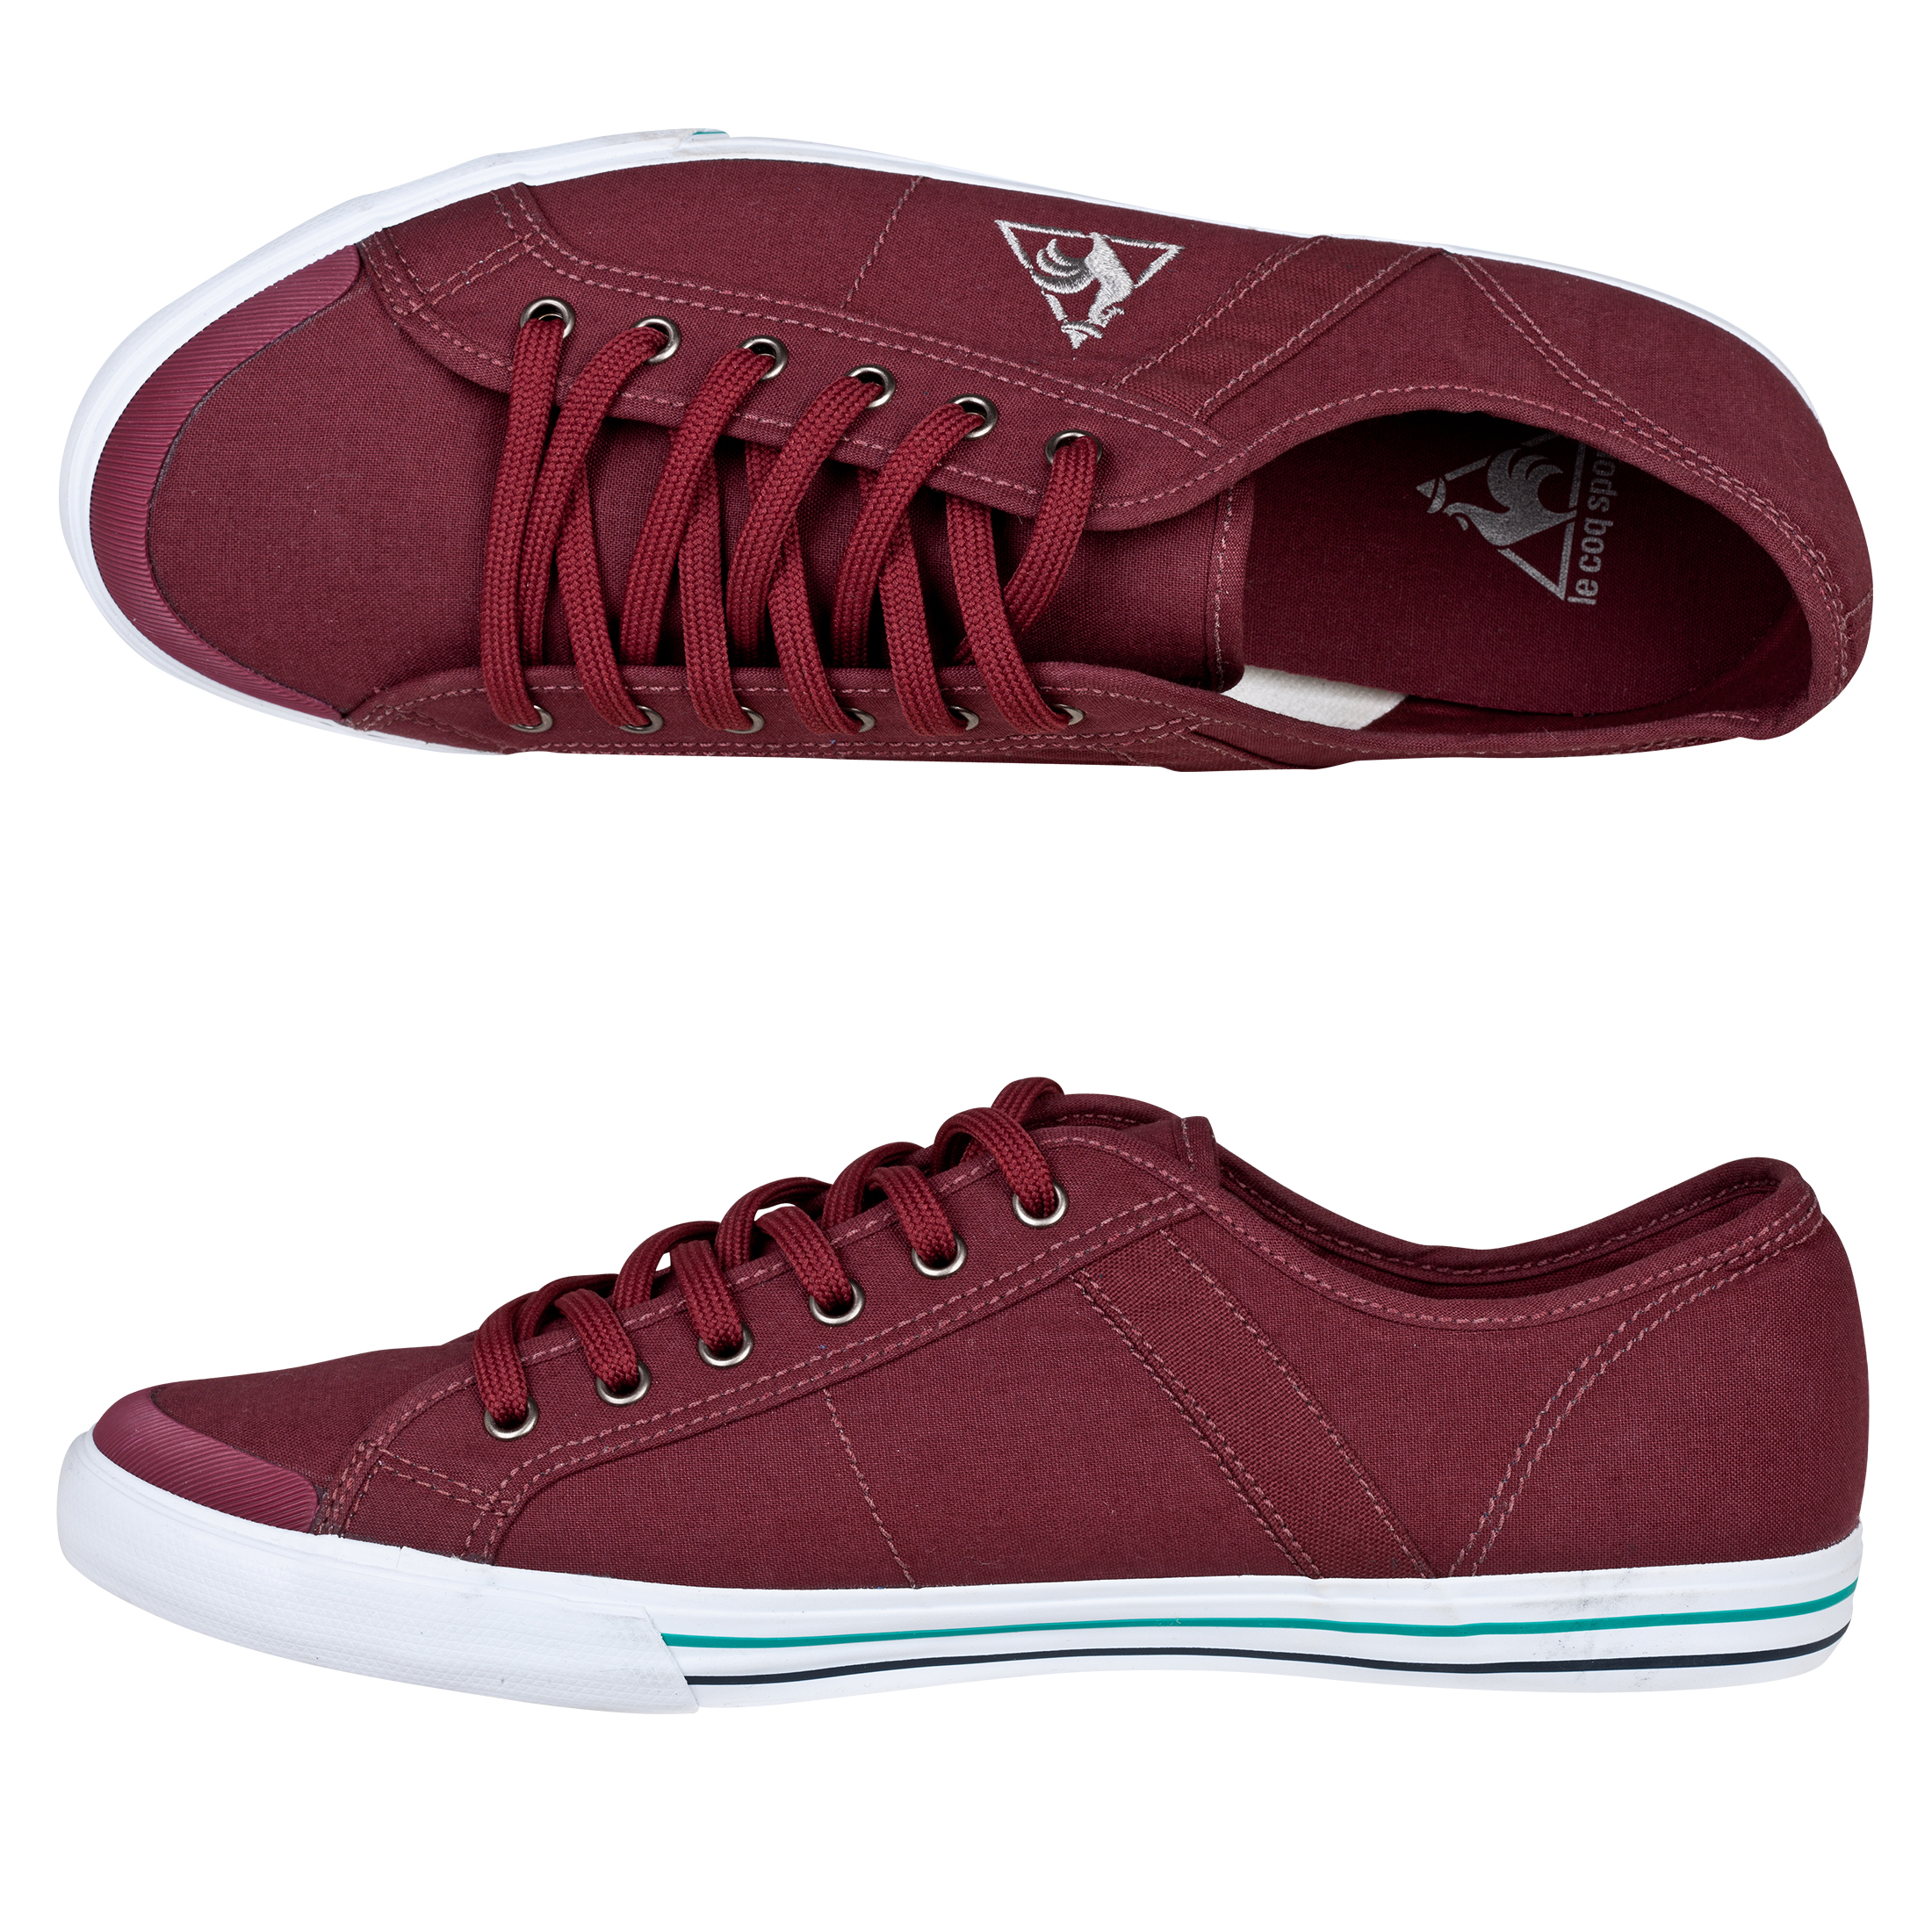 Le Coq Sportif Saint Malo Plimsols - Red Retro Bordeaux